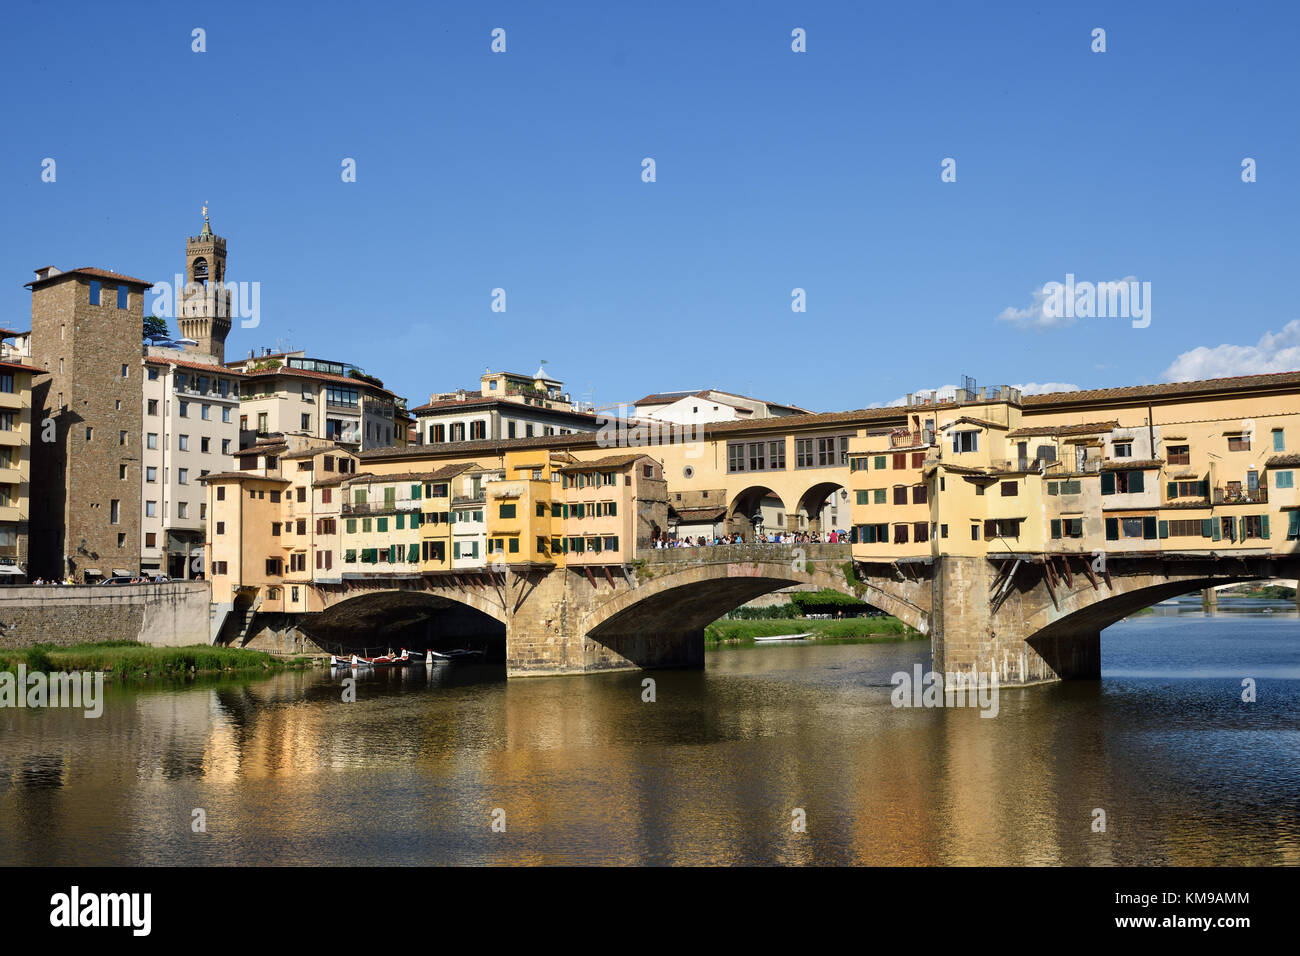 The river Arno and Ponte Vecchio bridge in Firenze (Florence), Italy - Stock Image